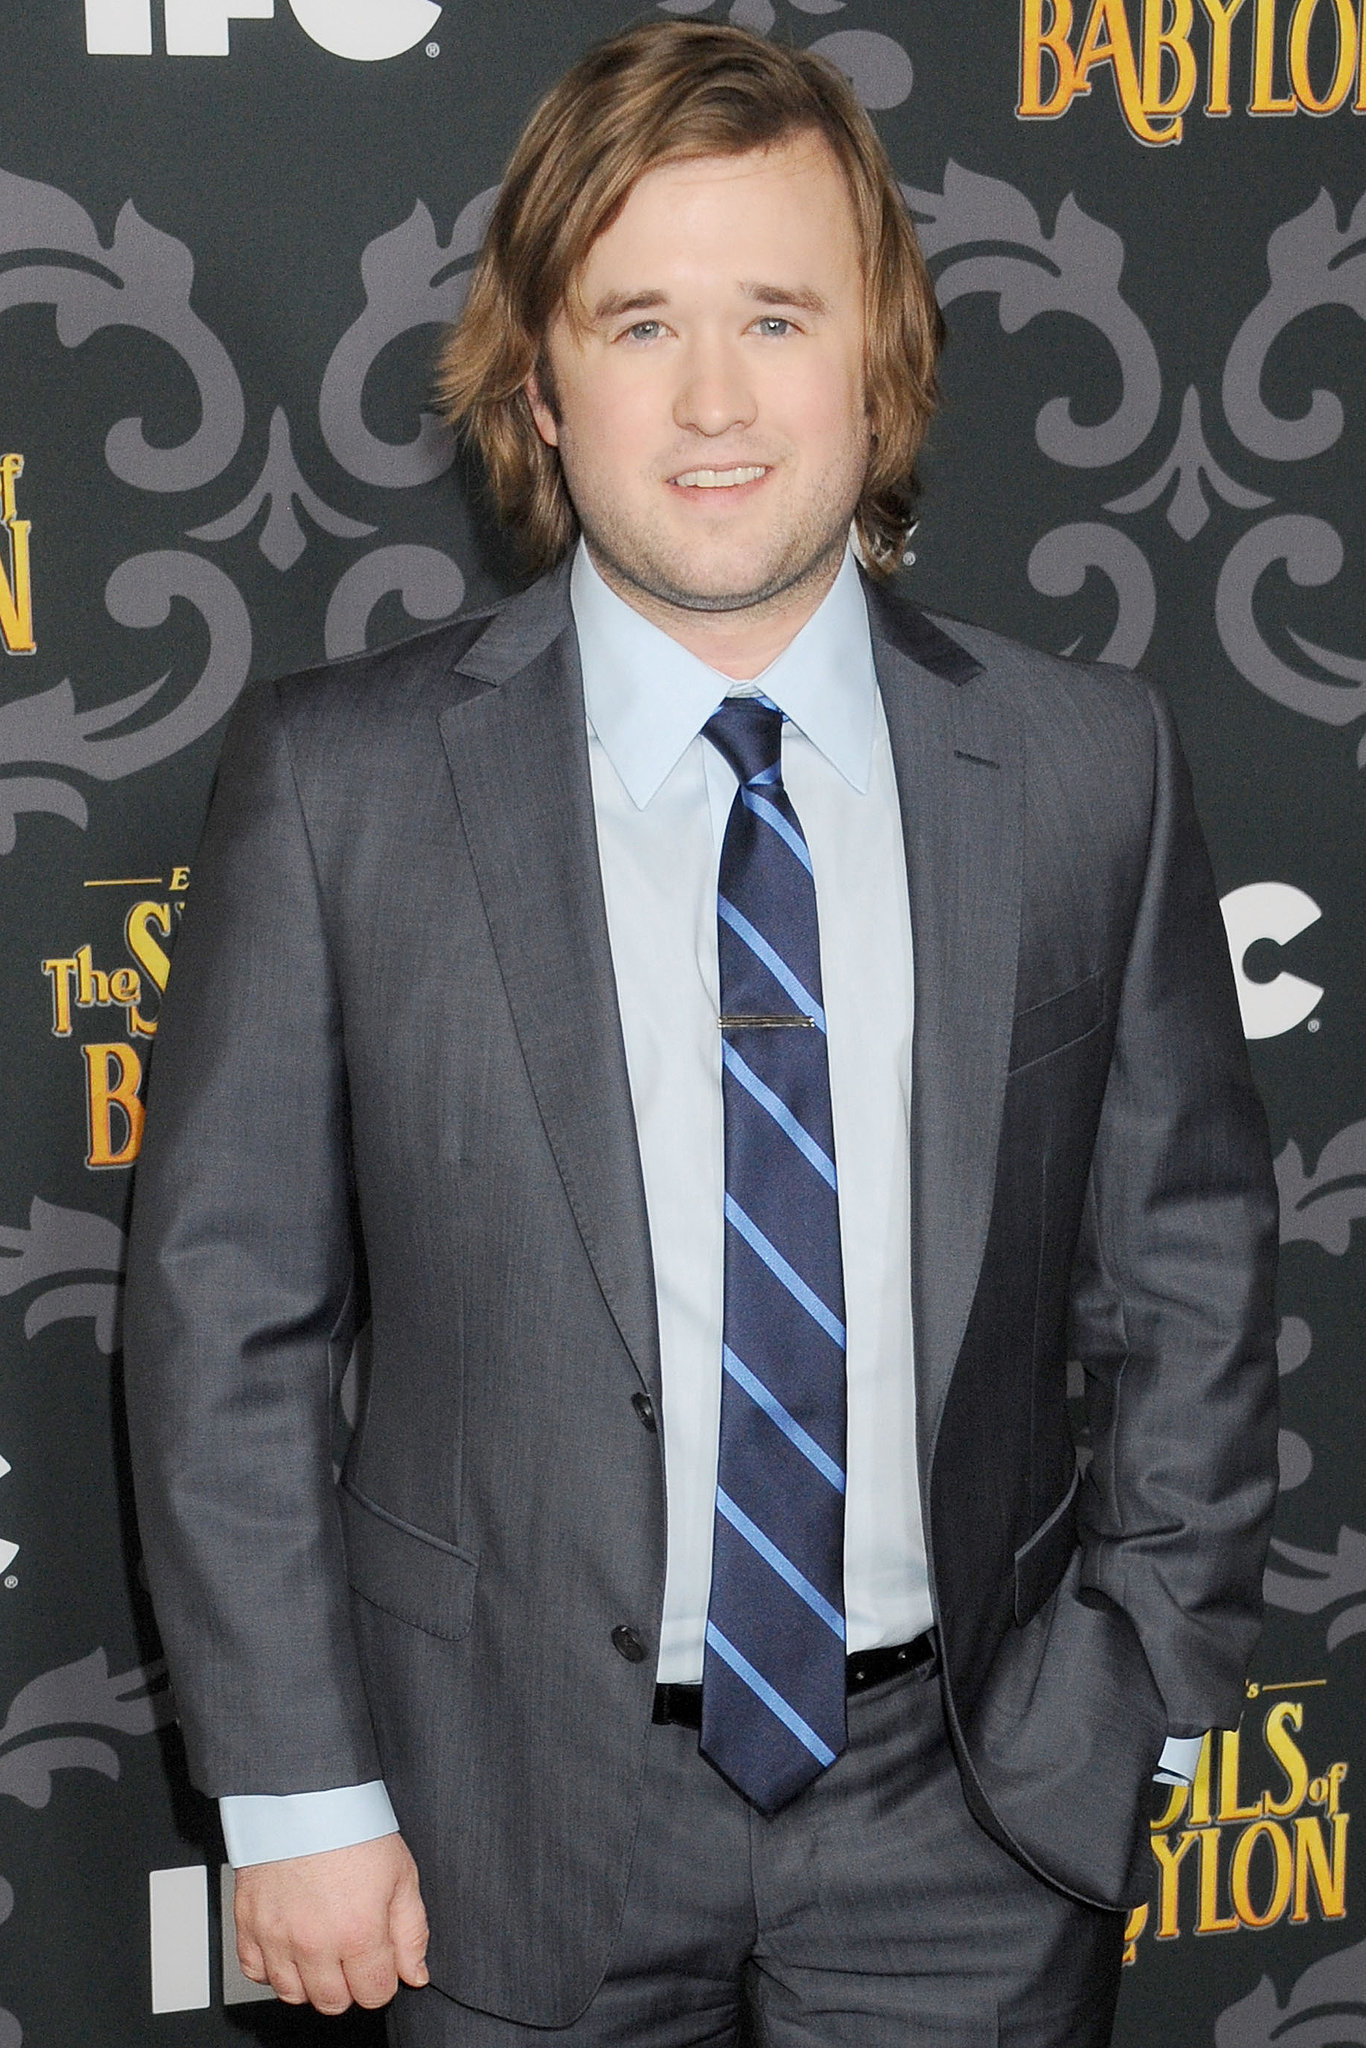 Haley Joel Osment Entourage Haley Joel Osment Will be in